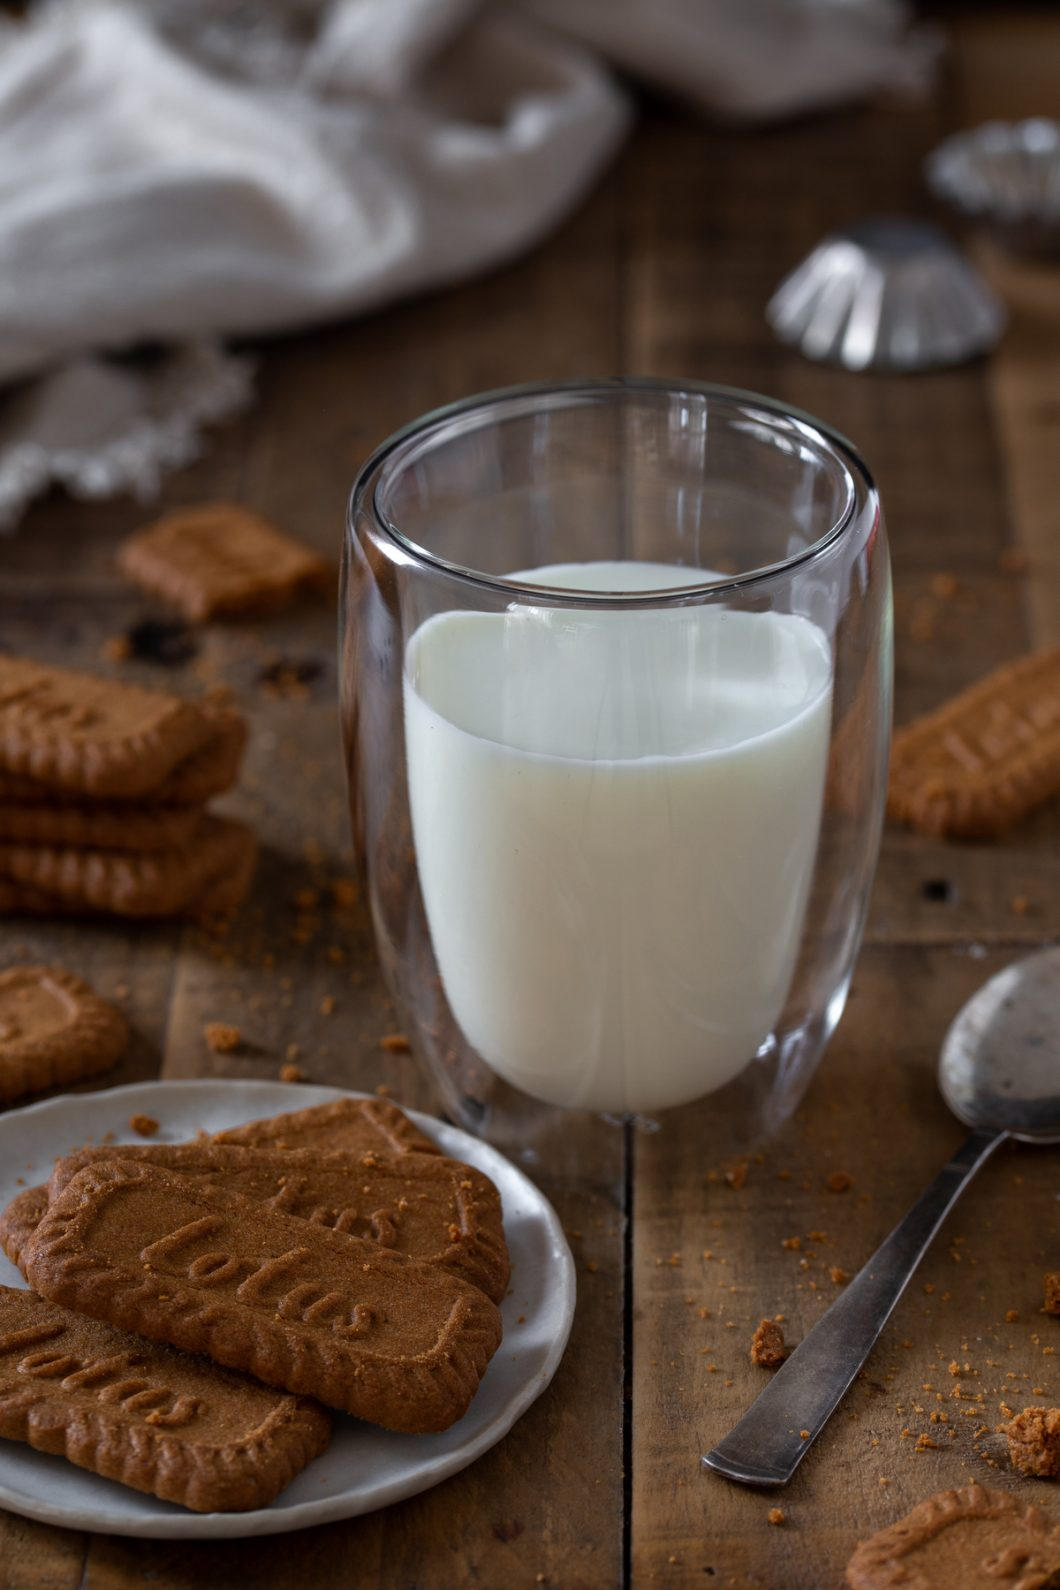 A glass of milk with biscuits all around.